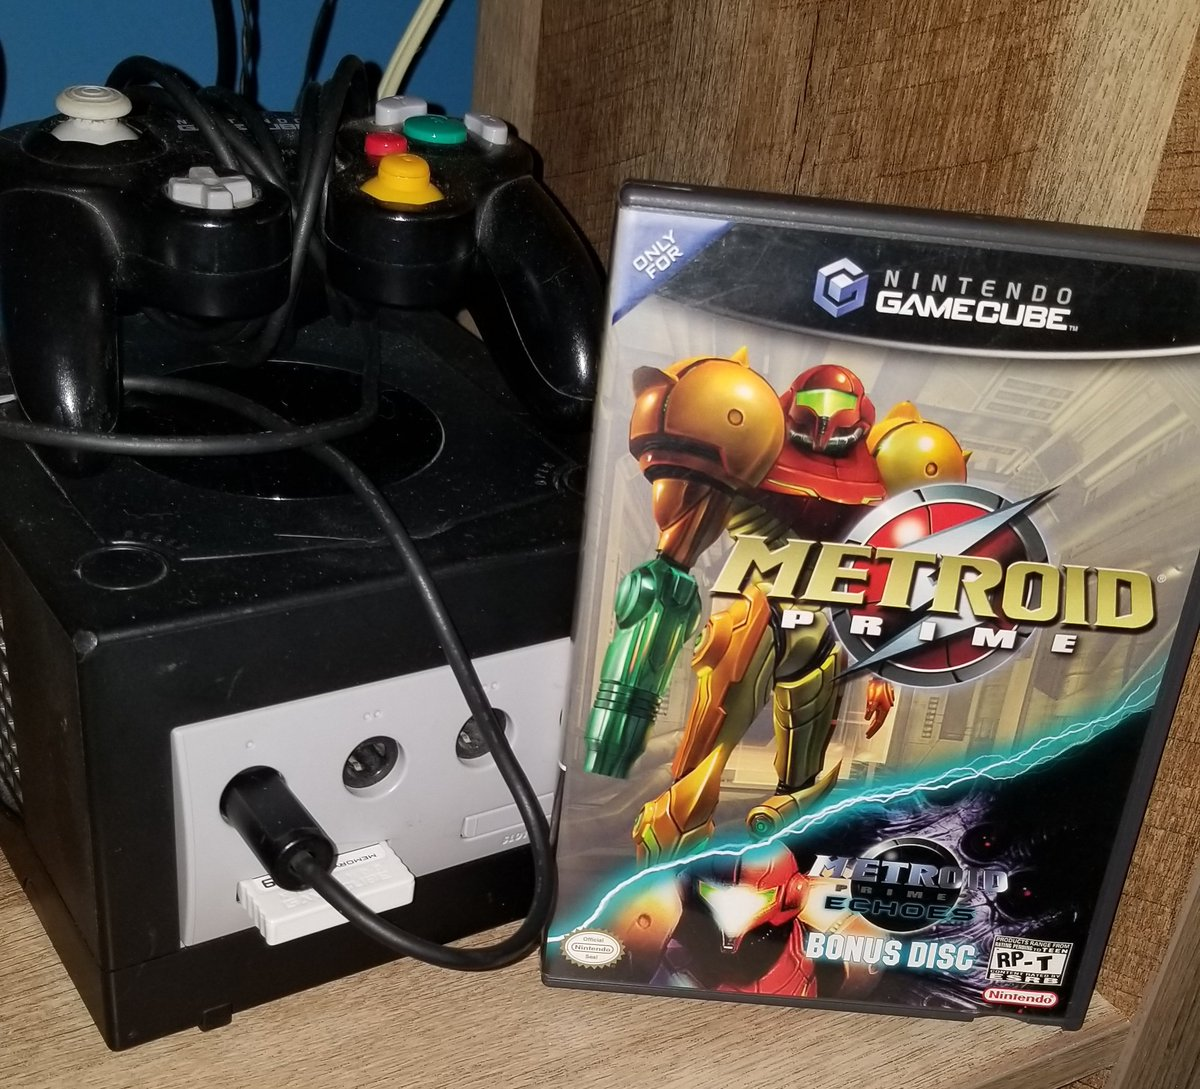 RT @xngamer1: Happy #MondayCubed! I finally got a new GameCube game after 5 years! https://t.co/uLM3sQGXX1